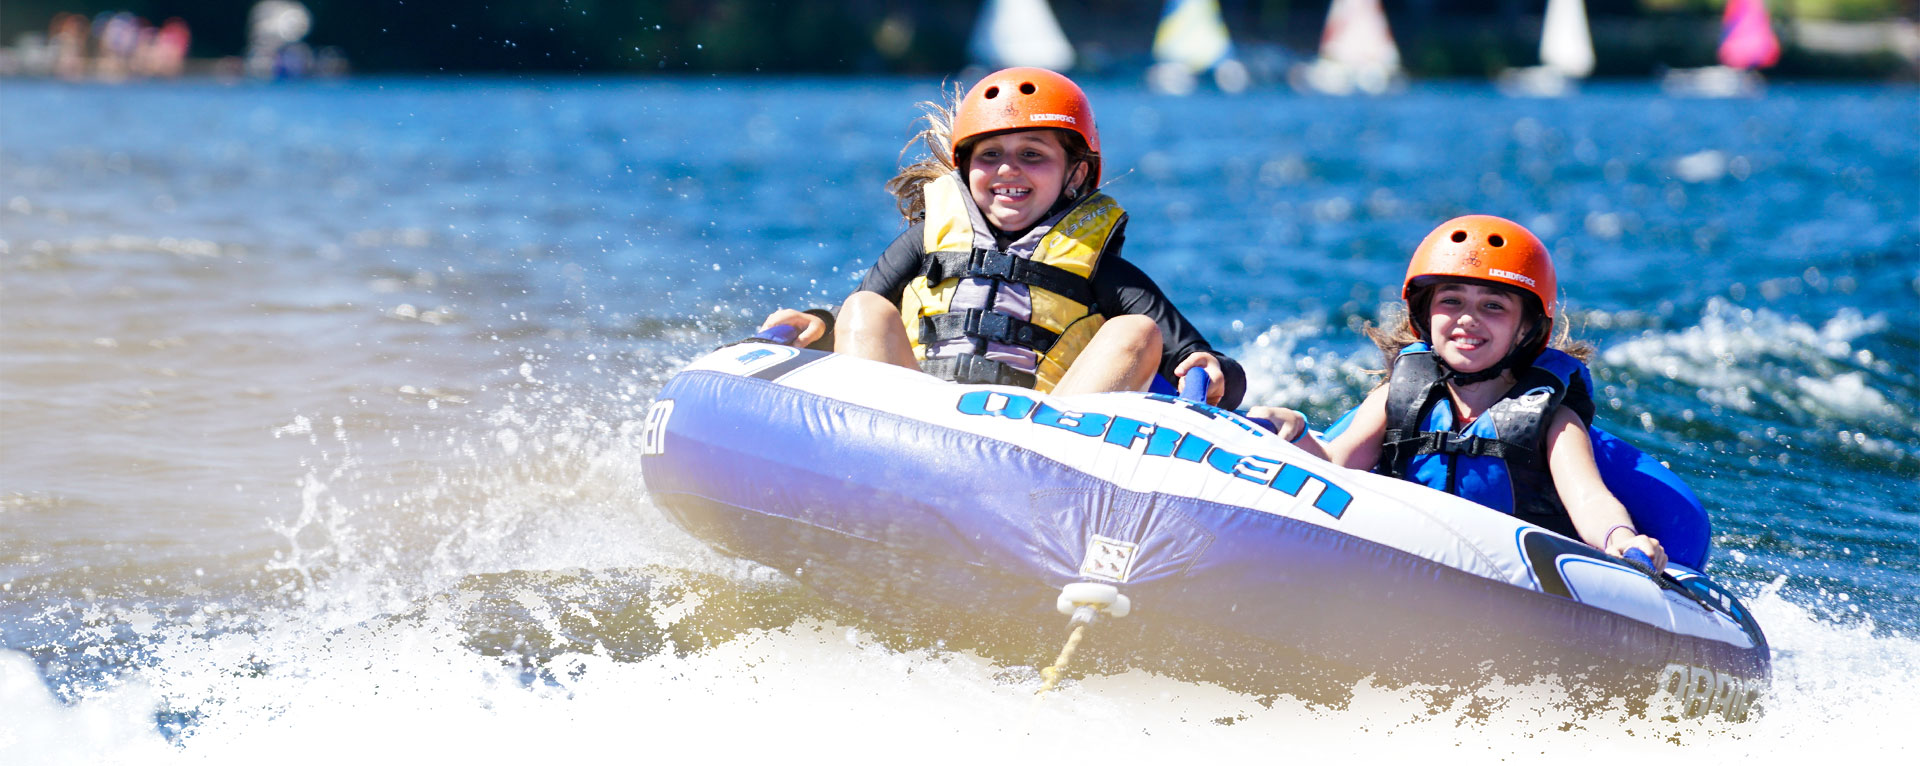 Frequently asked questions about summer camp in Maine